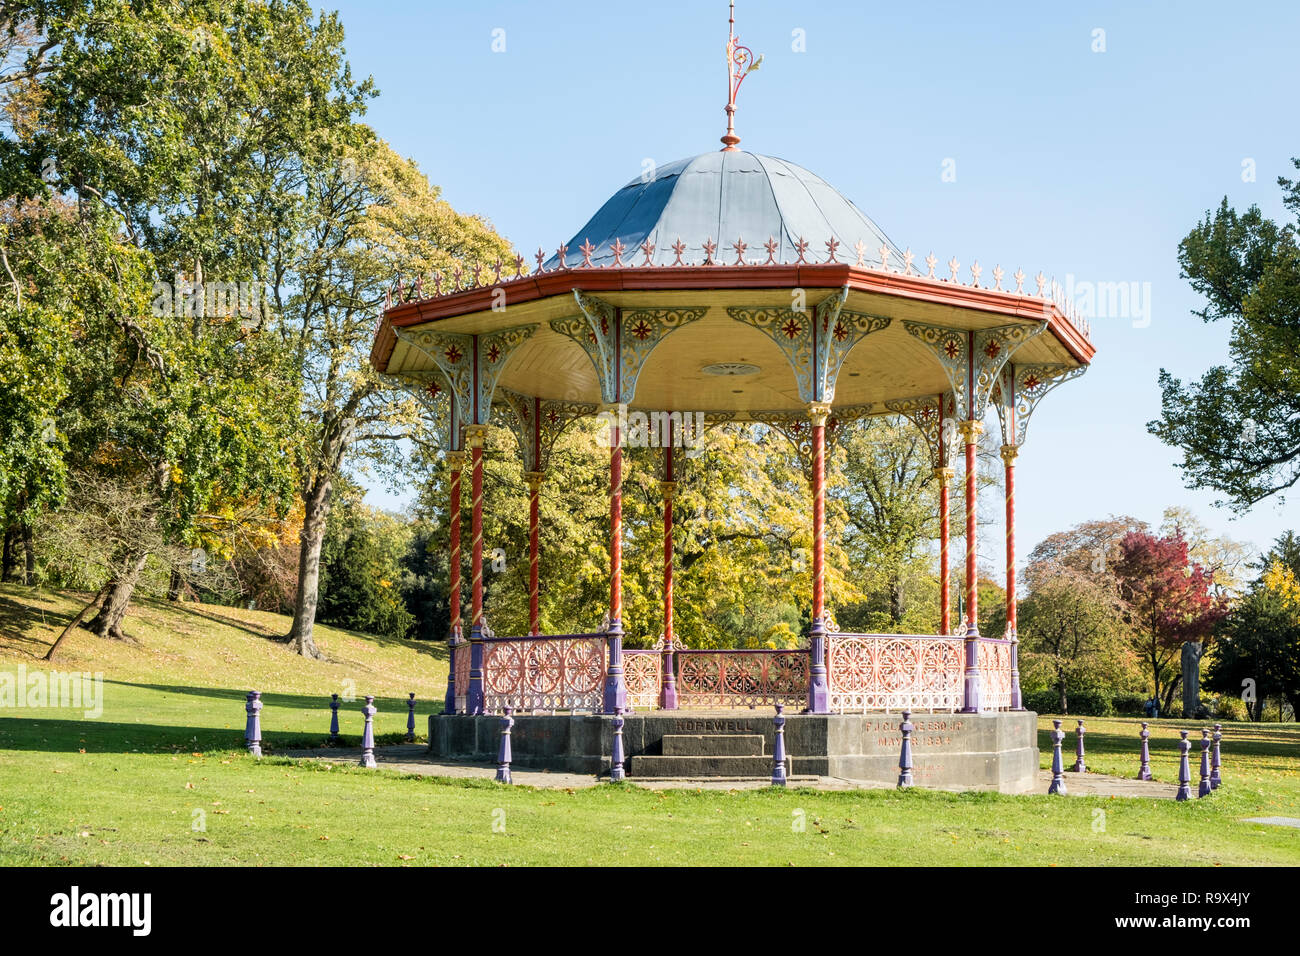 The Bandstand at The Arboretum in Lincoln, England, UK - Stock Image